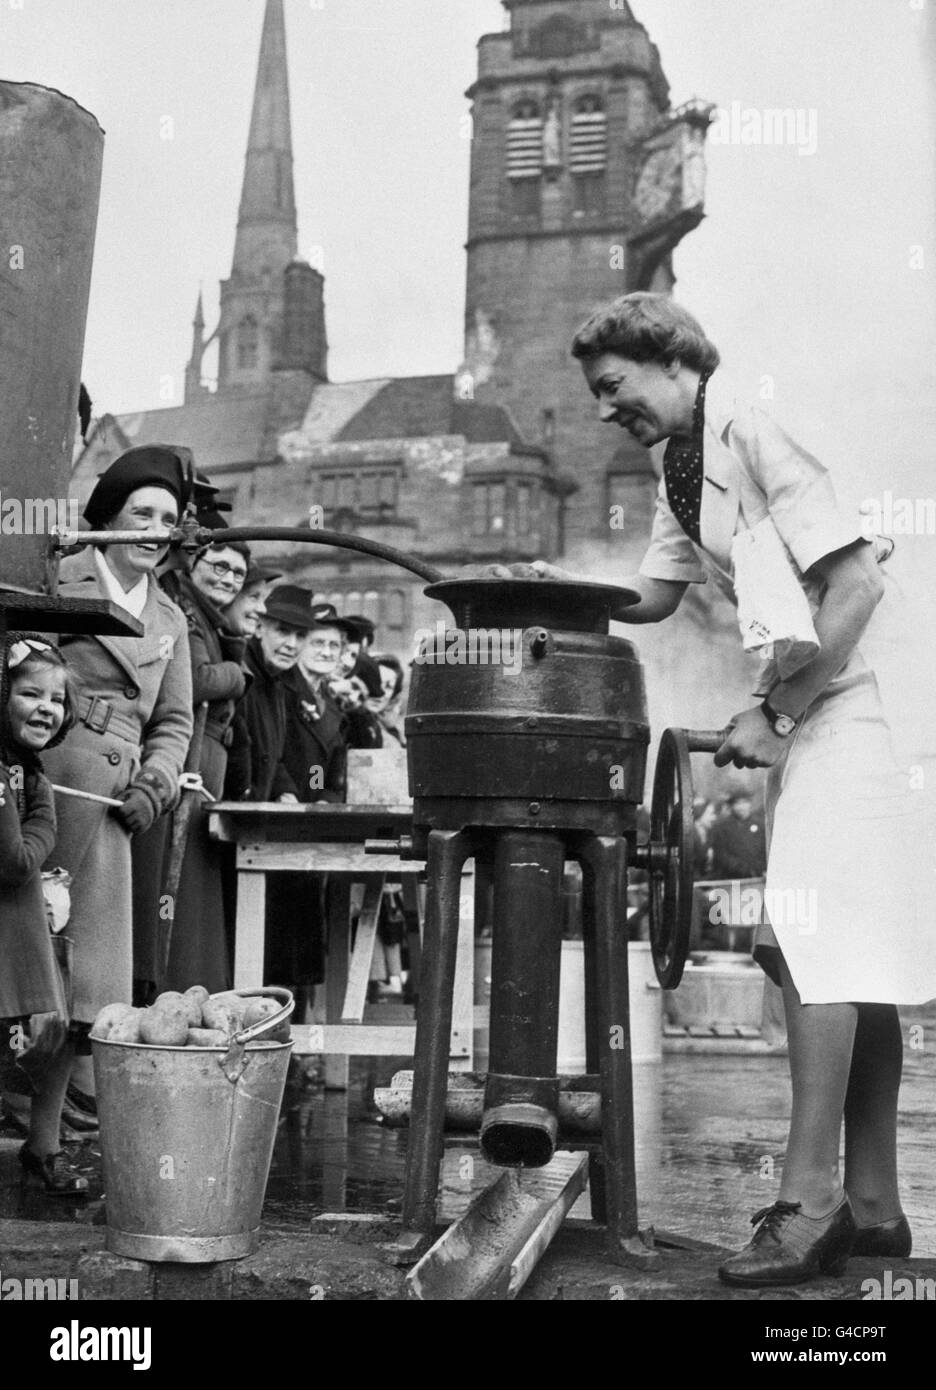 Food - Semi-Mobile Canteen - Coventry - Stock Image